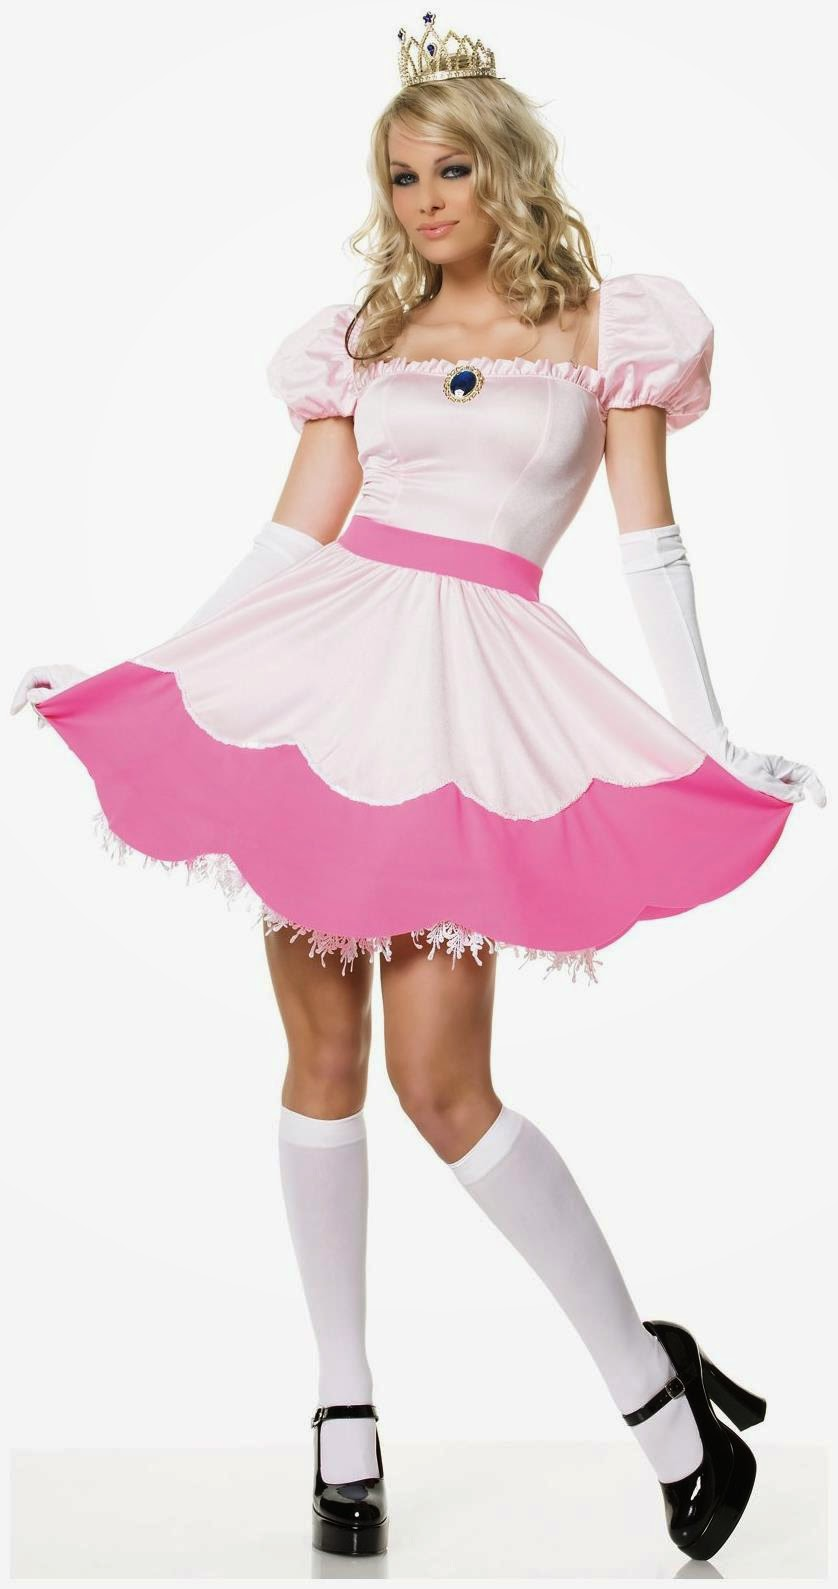 http://www.partybell.com/p-9449-pretty-pink-princess-adult-costume.aspx